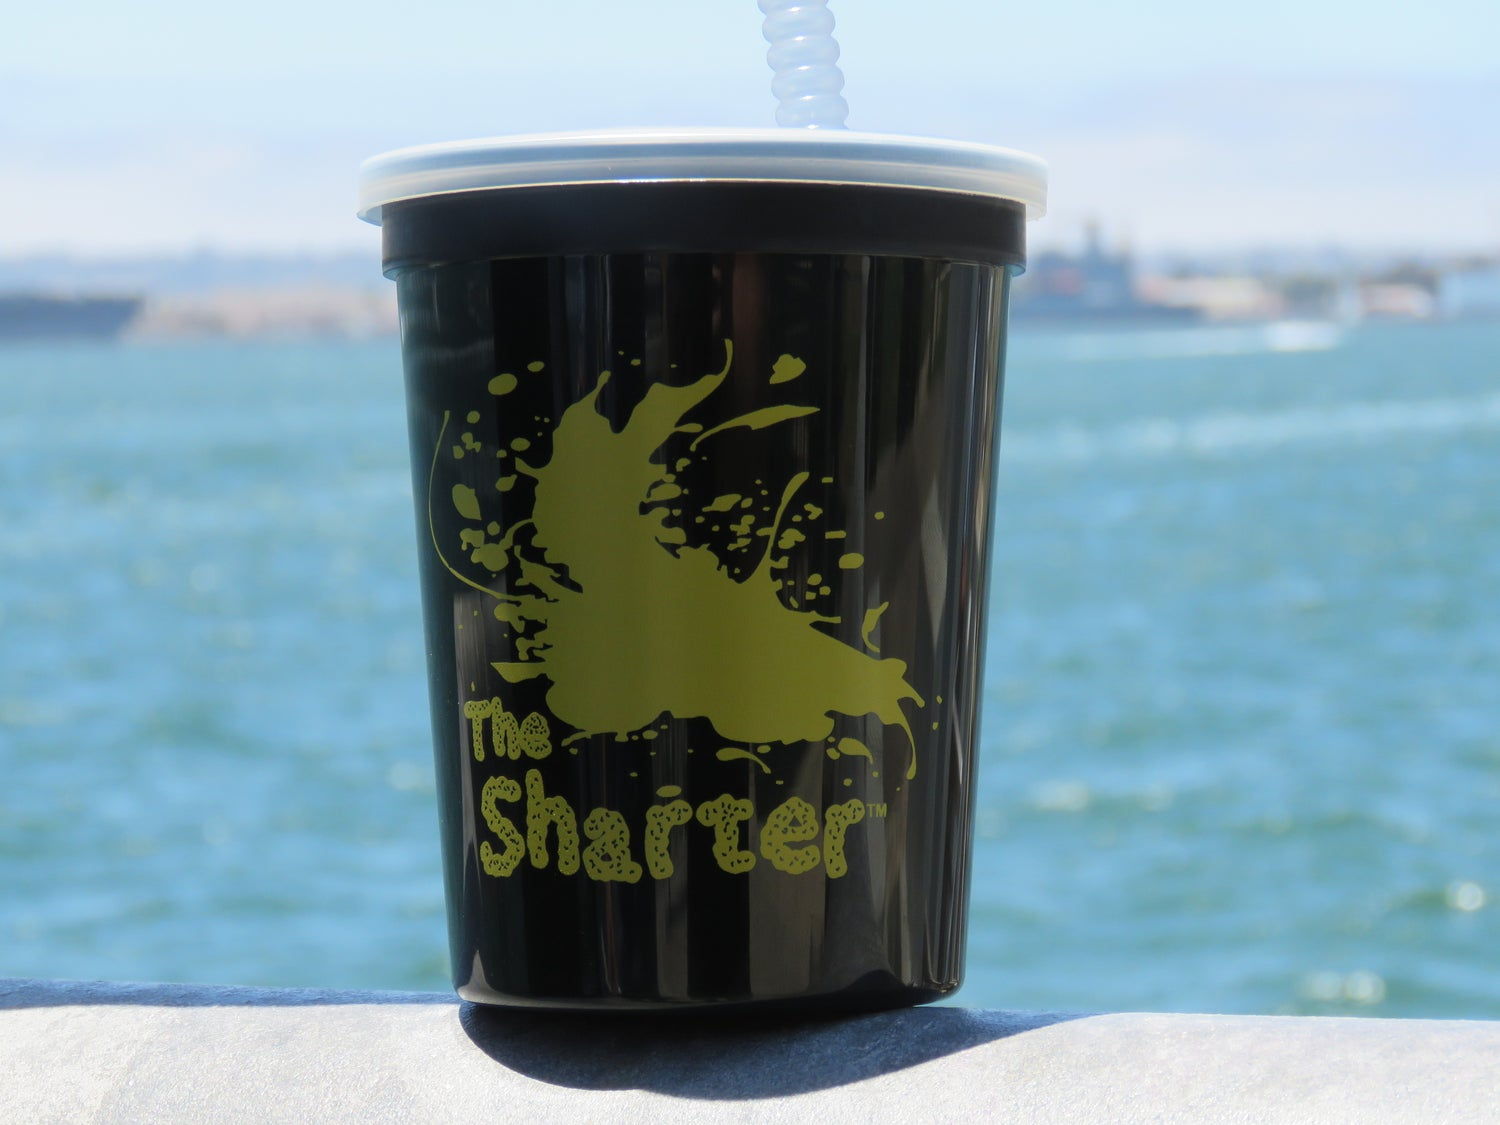 Image of The Sharter (Black)